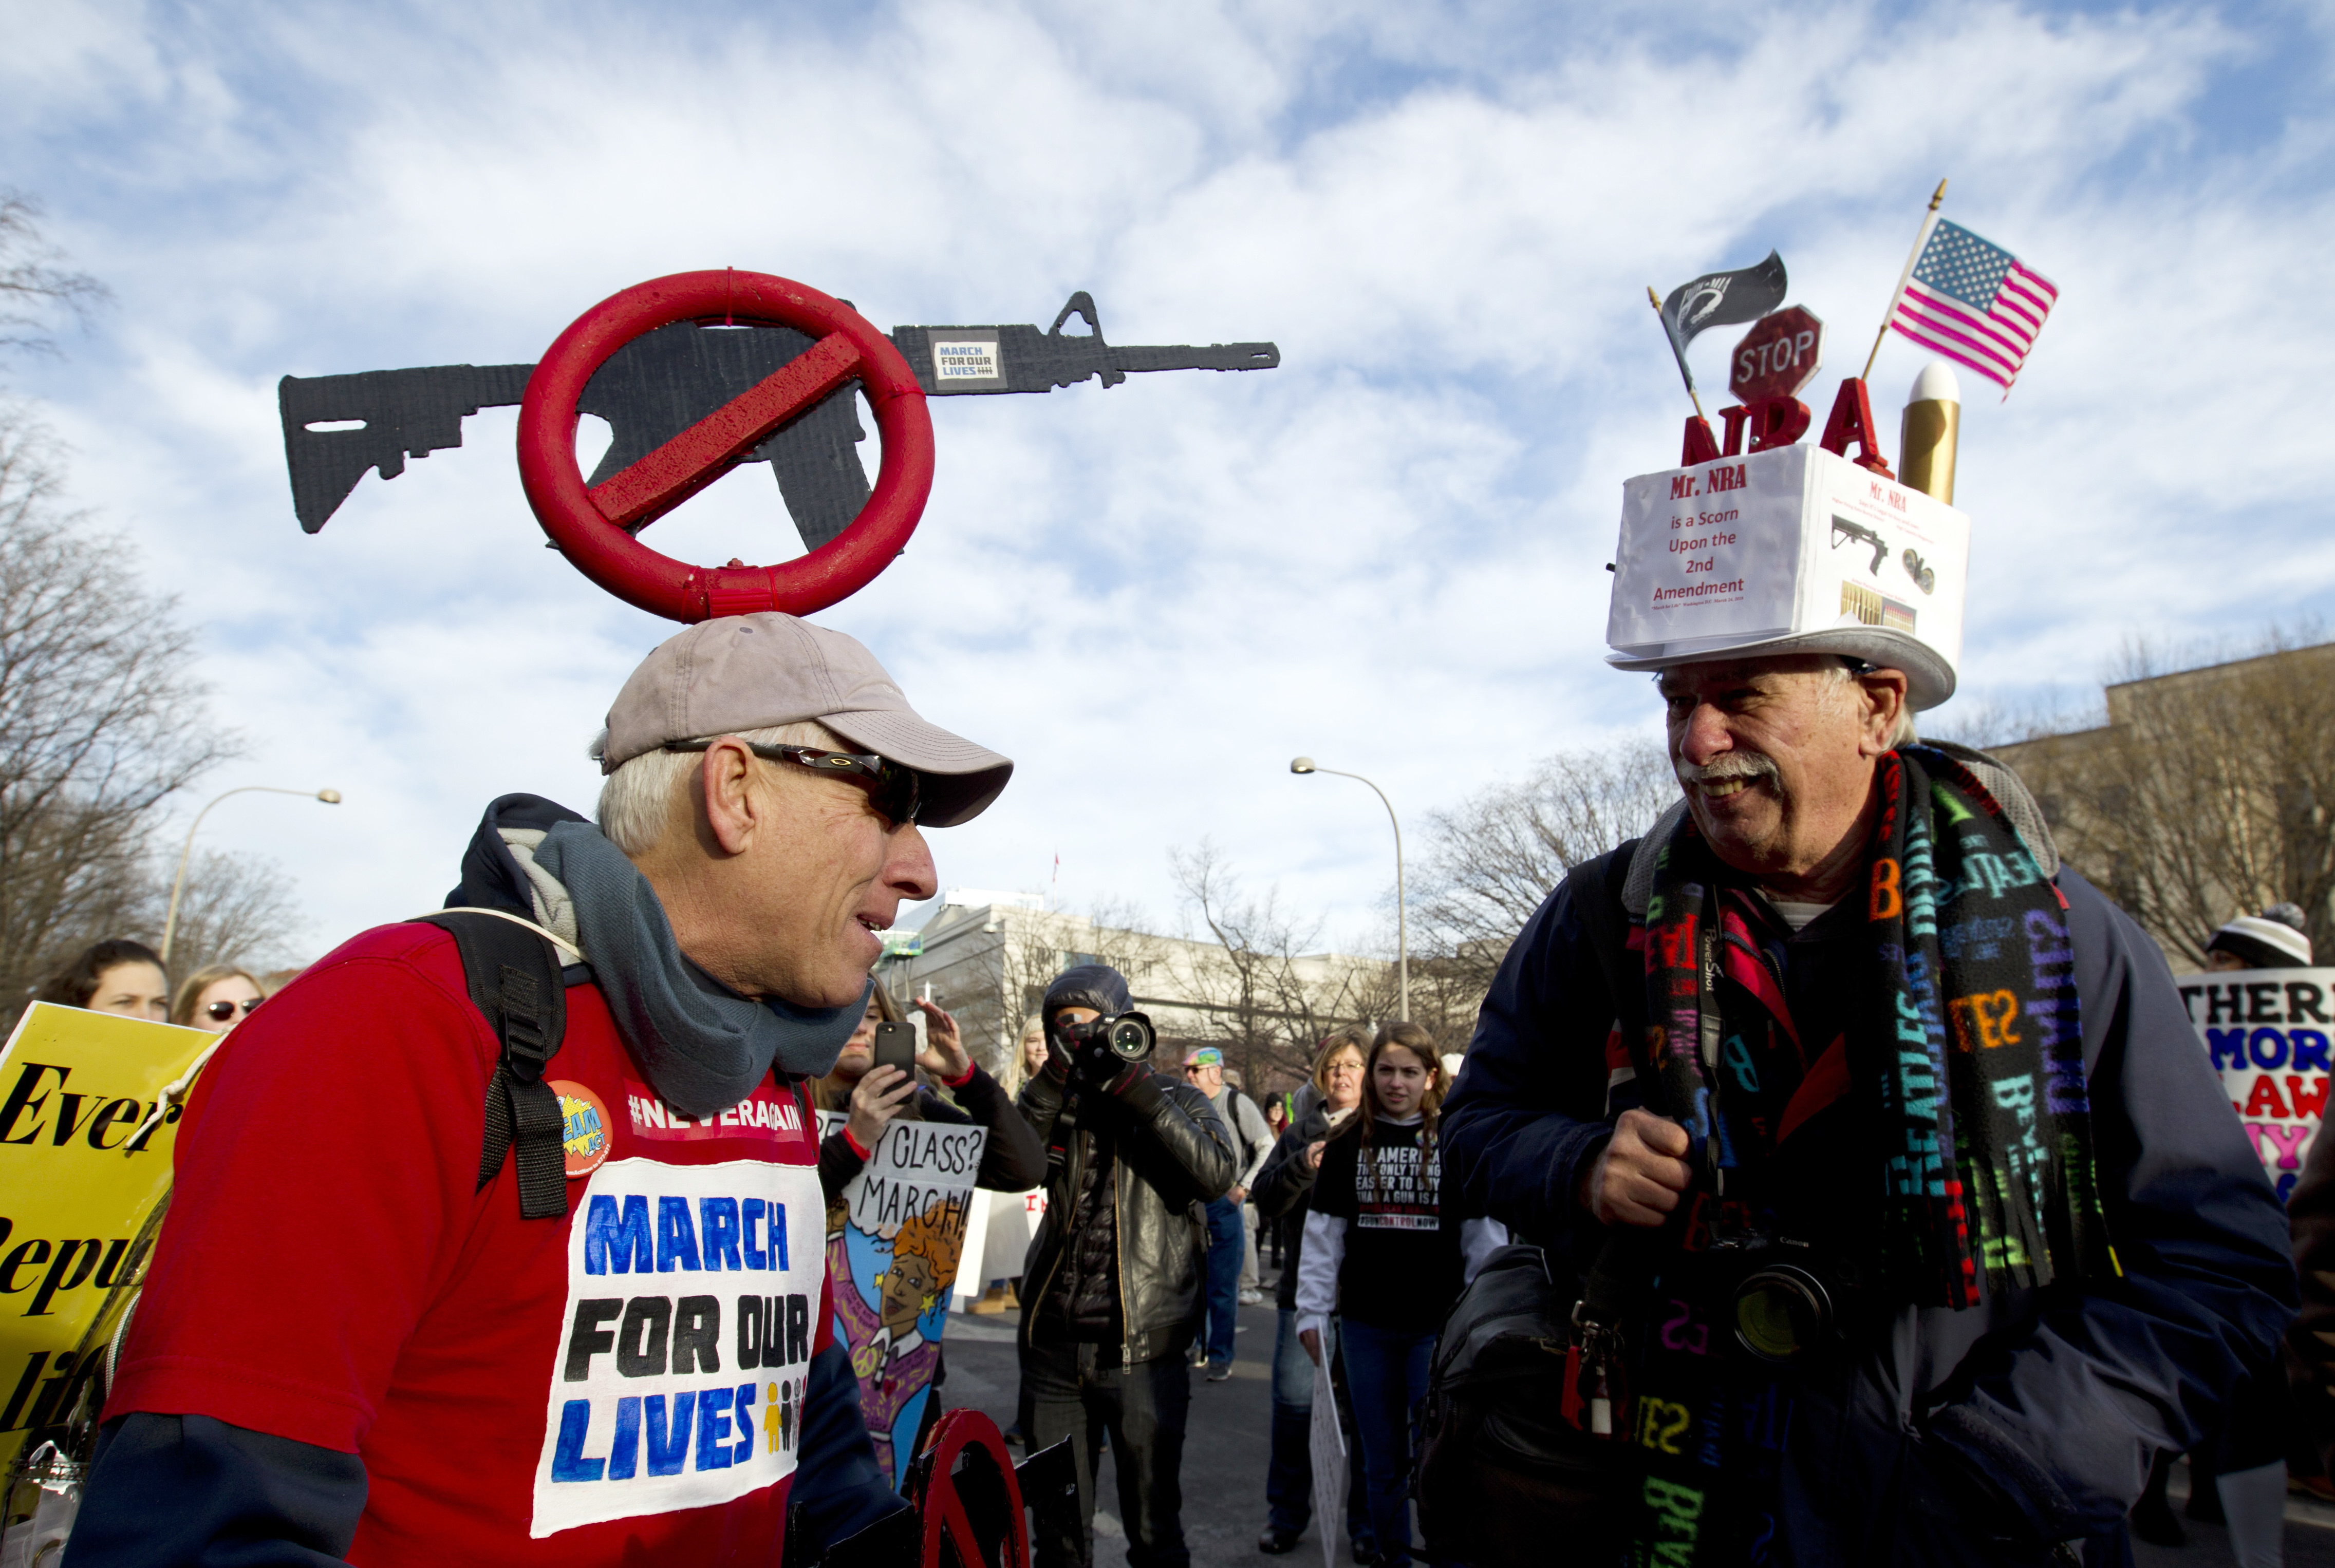 <div class='meta'><div class='origin-logo' data-origin='AP'></div><span class='caption-text' data-credit='AP'>Crowds of people hold signs on Pennsylvania Avenue at the &#34;March for Our Lives&#34; rally in support of gun control, Saturday, March 24, 2018, in Washington.</span></div>